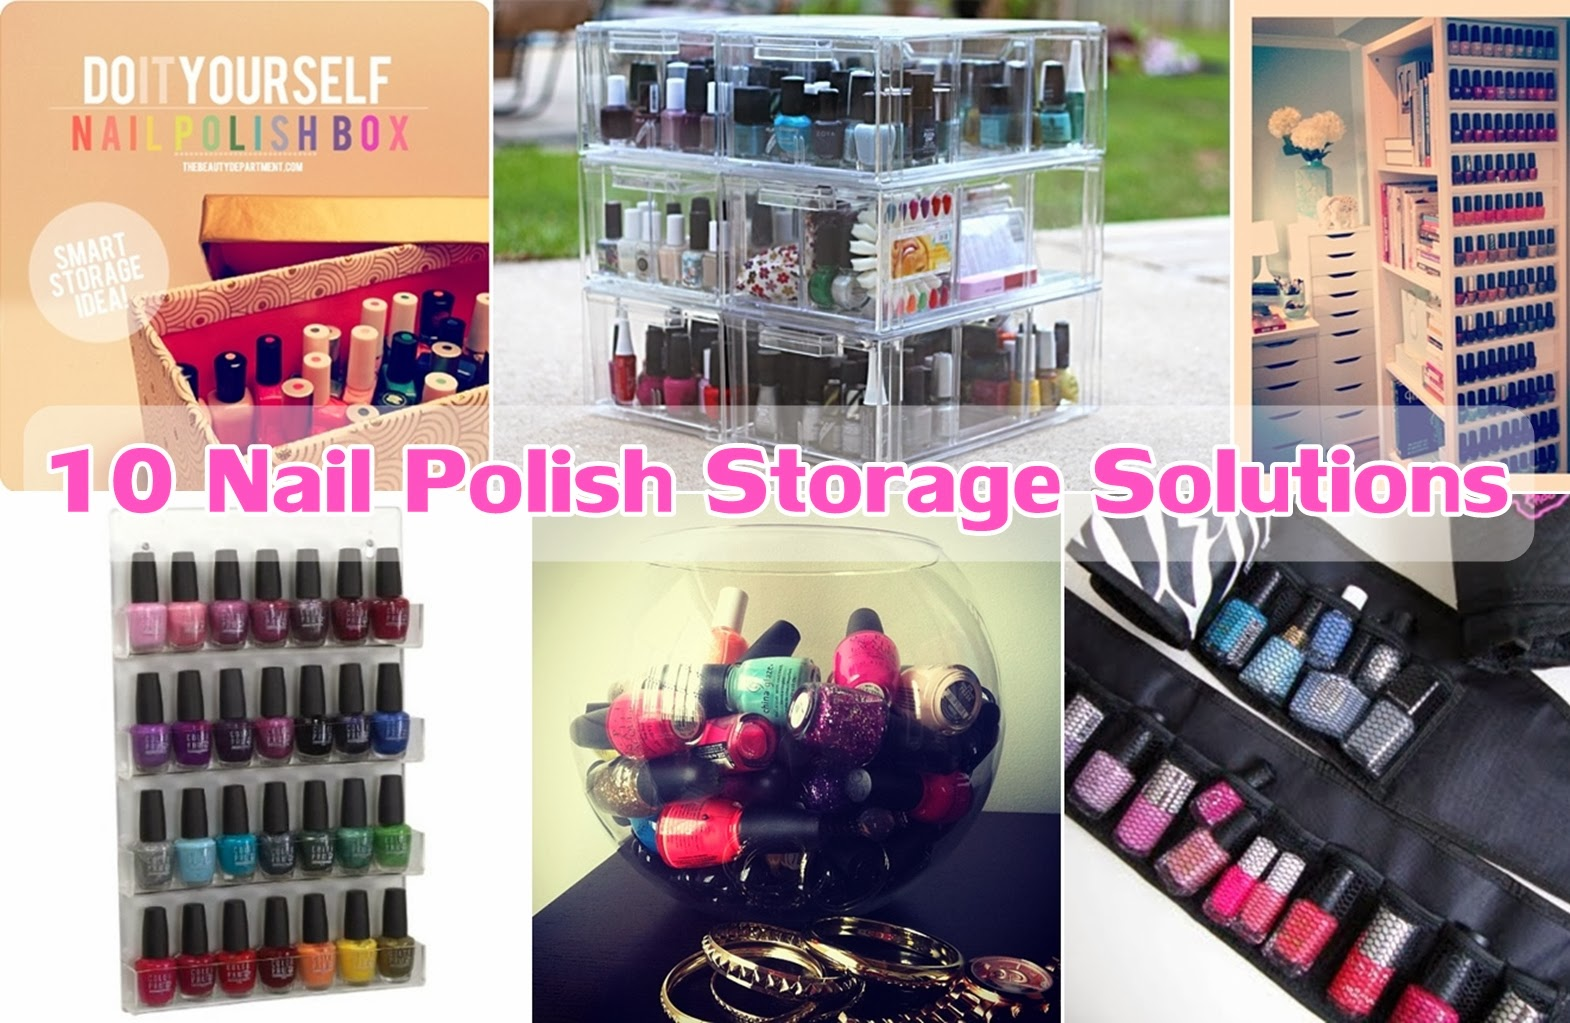 10 Nail Polish Storage Solutions - DIY Craft Projects